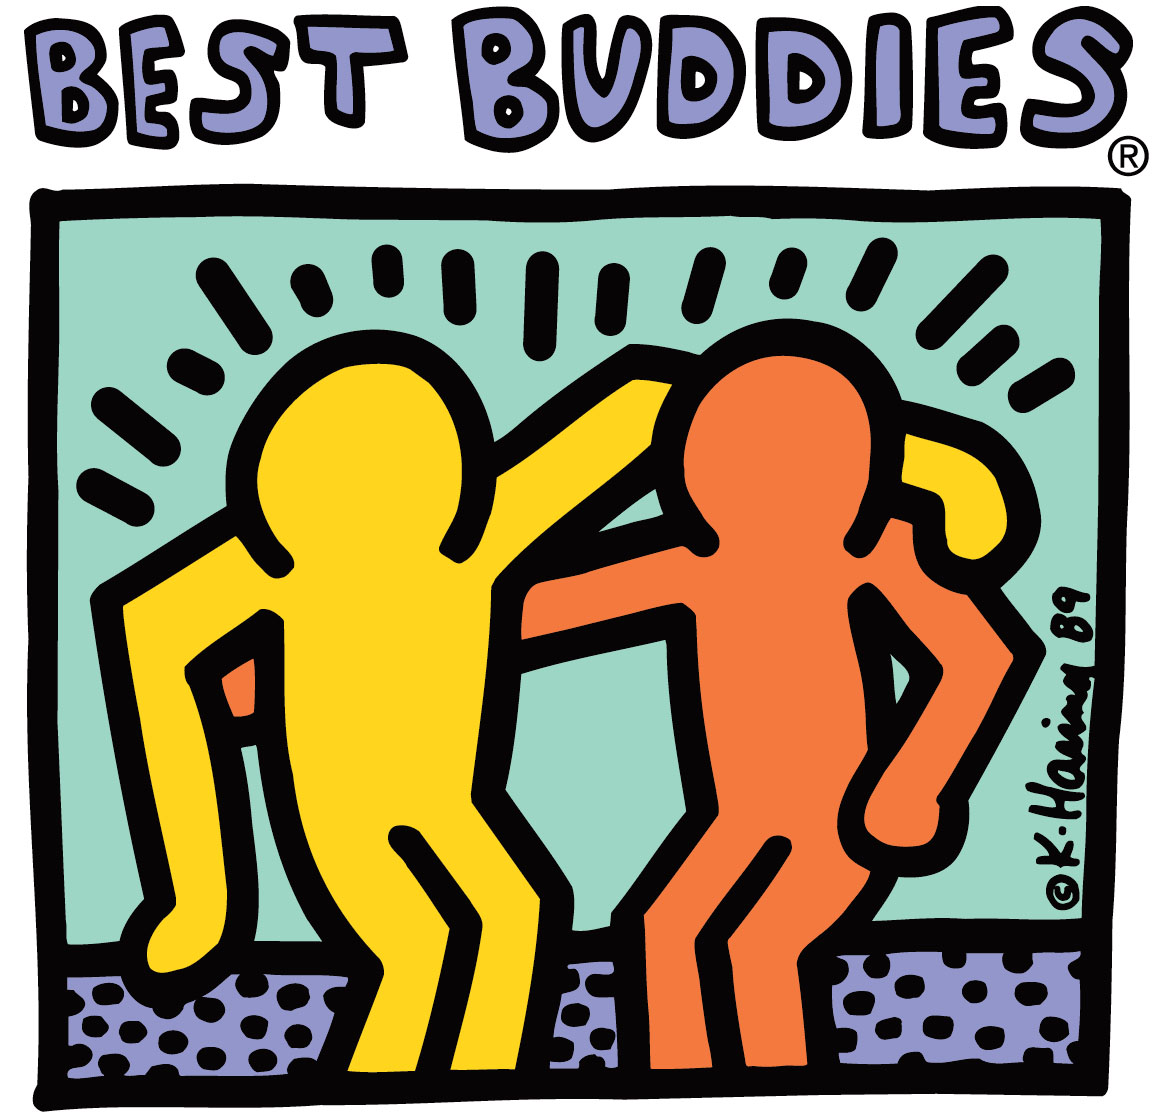 March Celebrates 'Best Buddies Month' – Get Involved With S:US!